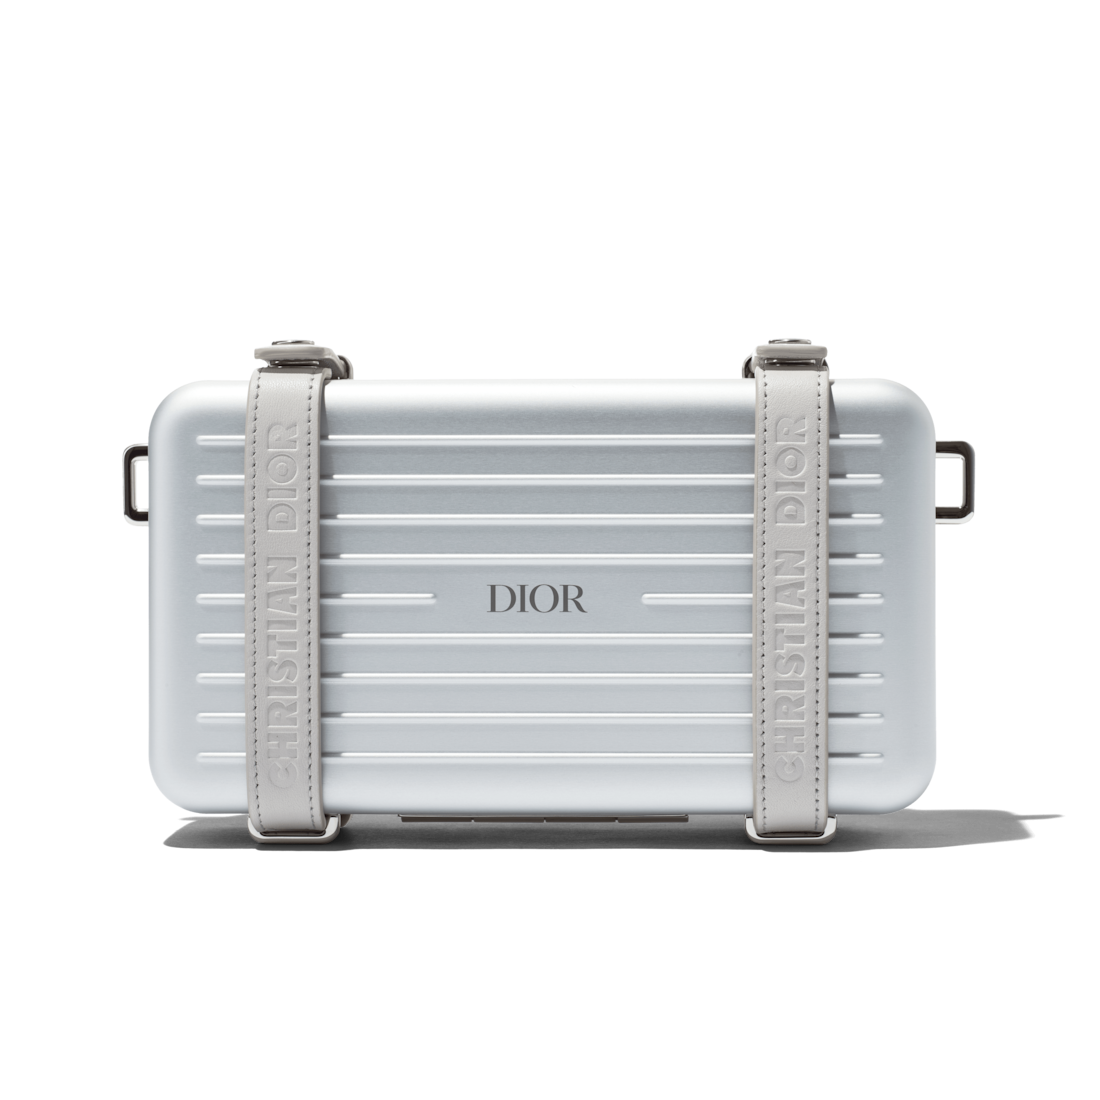 Personal - DIOR and RIMOWA